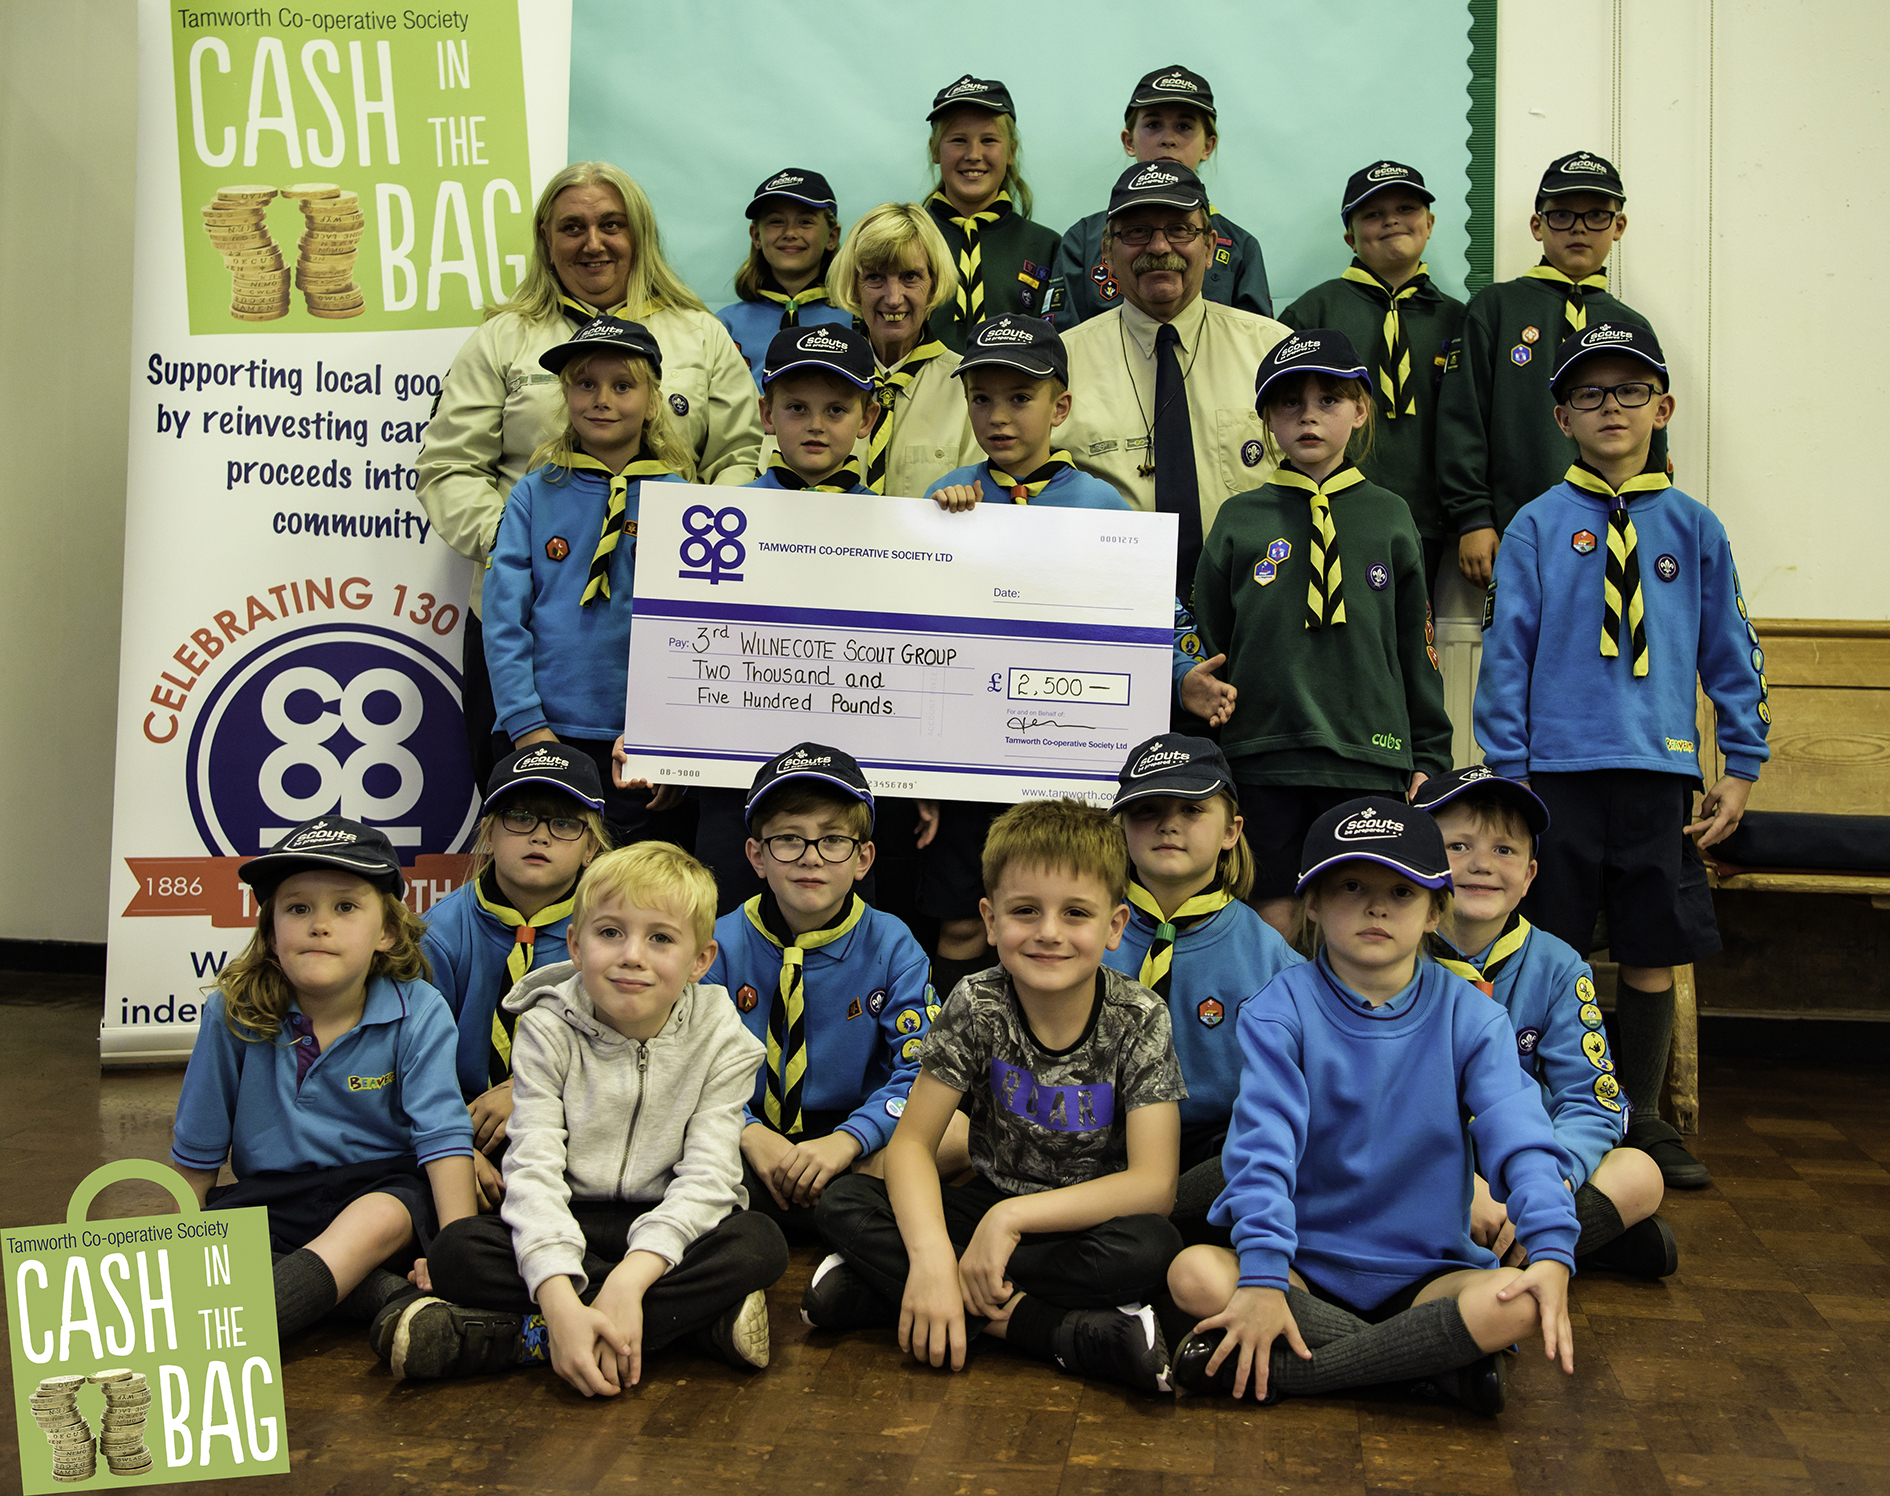 3rd Wilnecote Scout Group